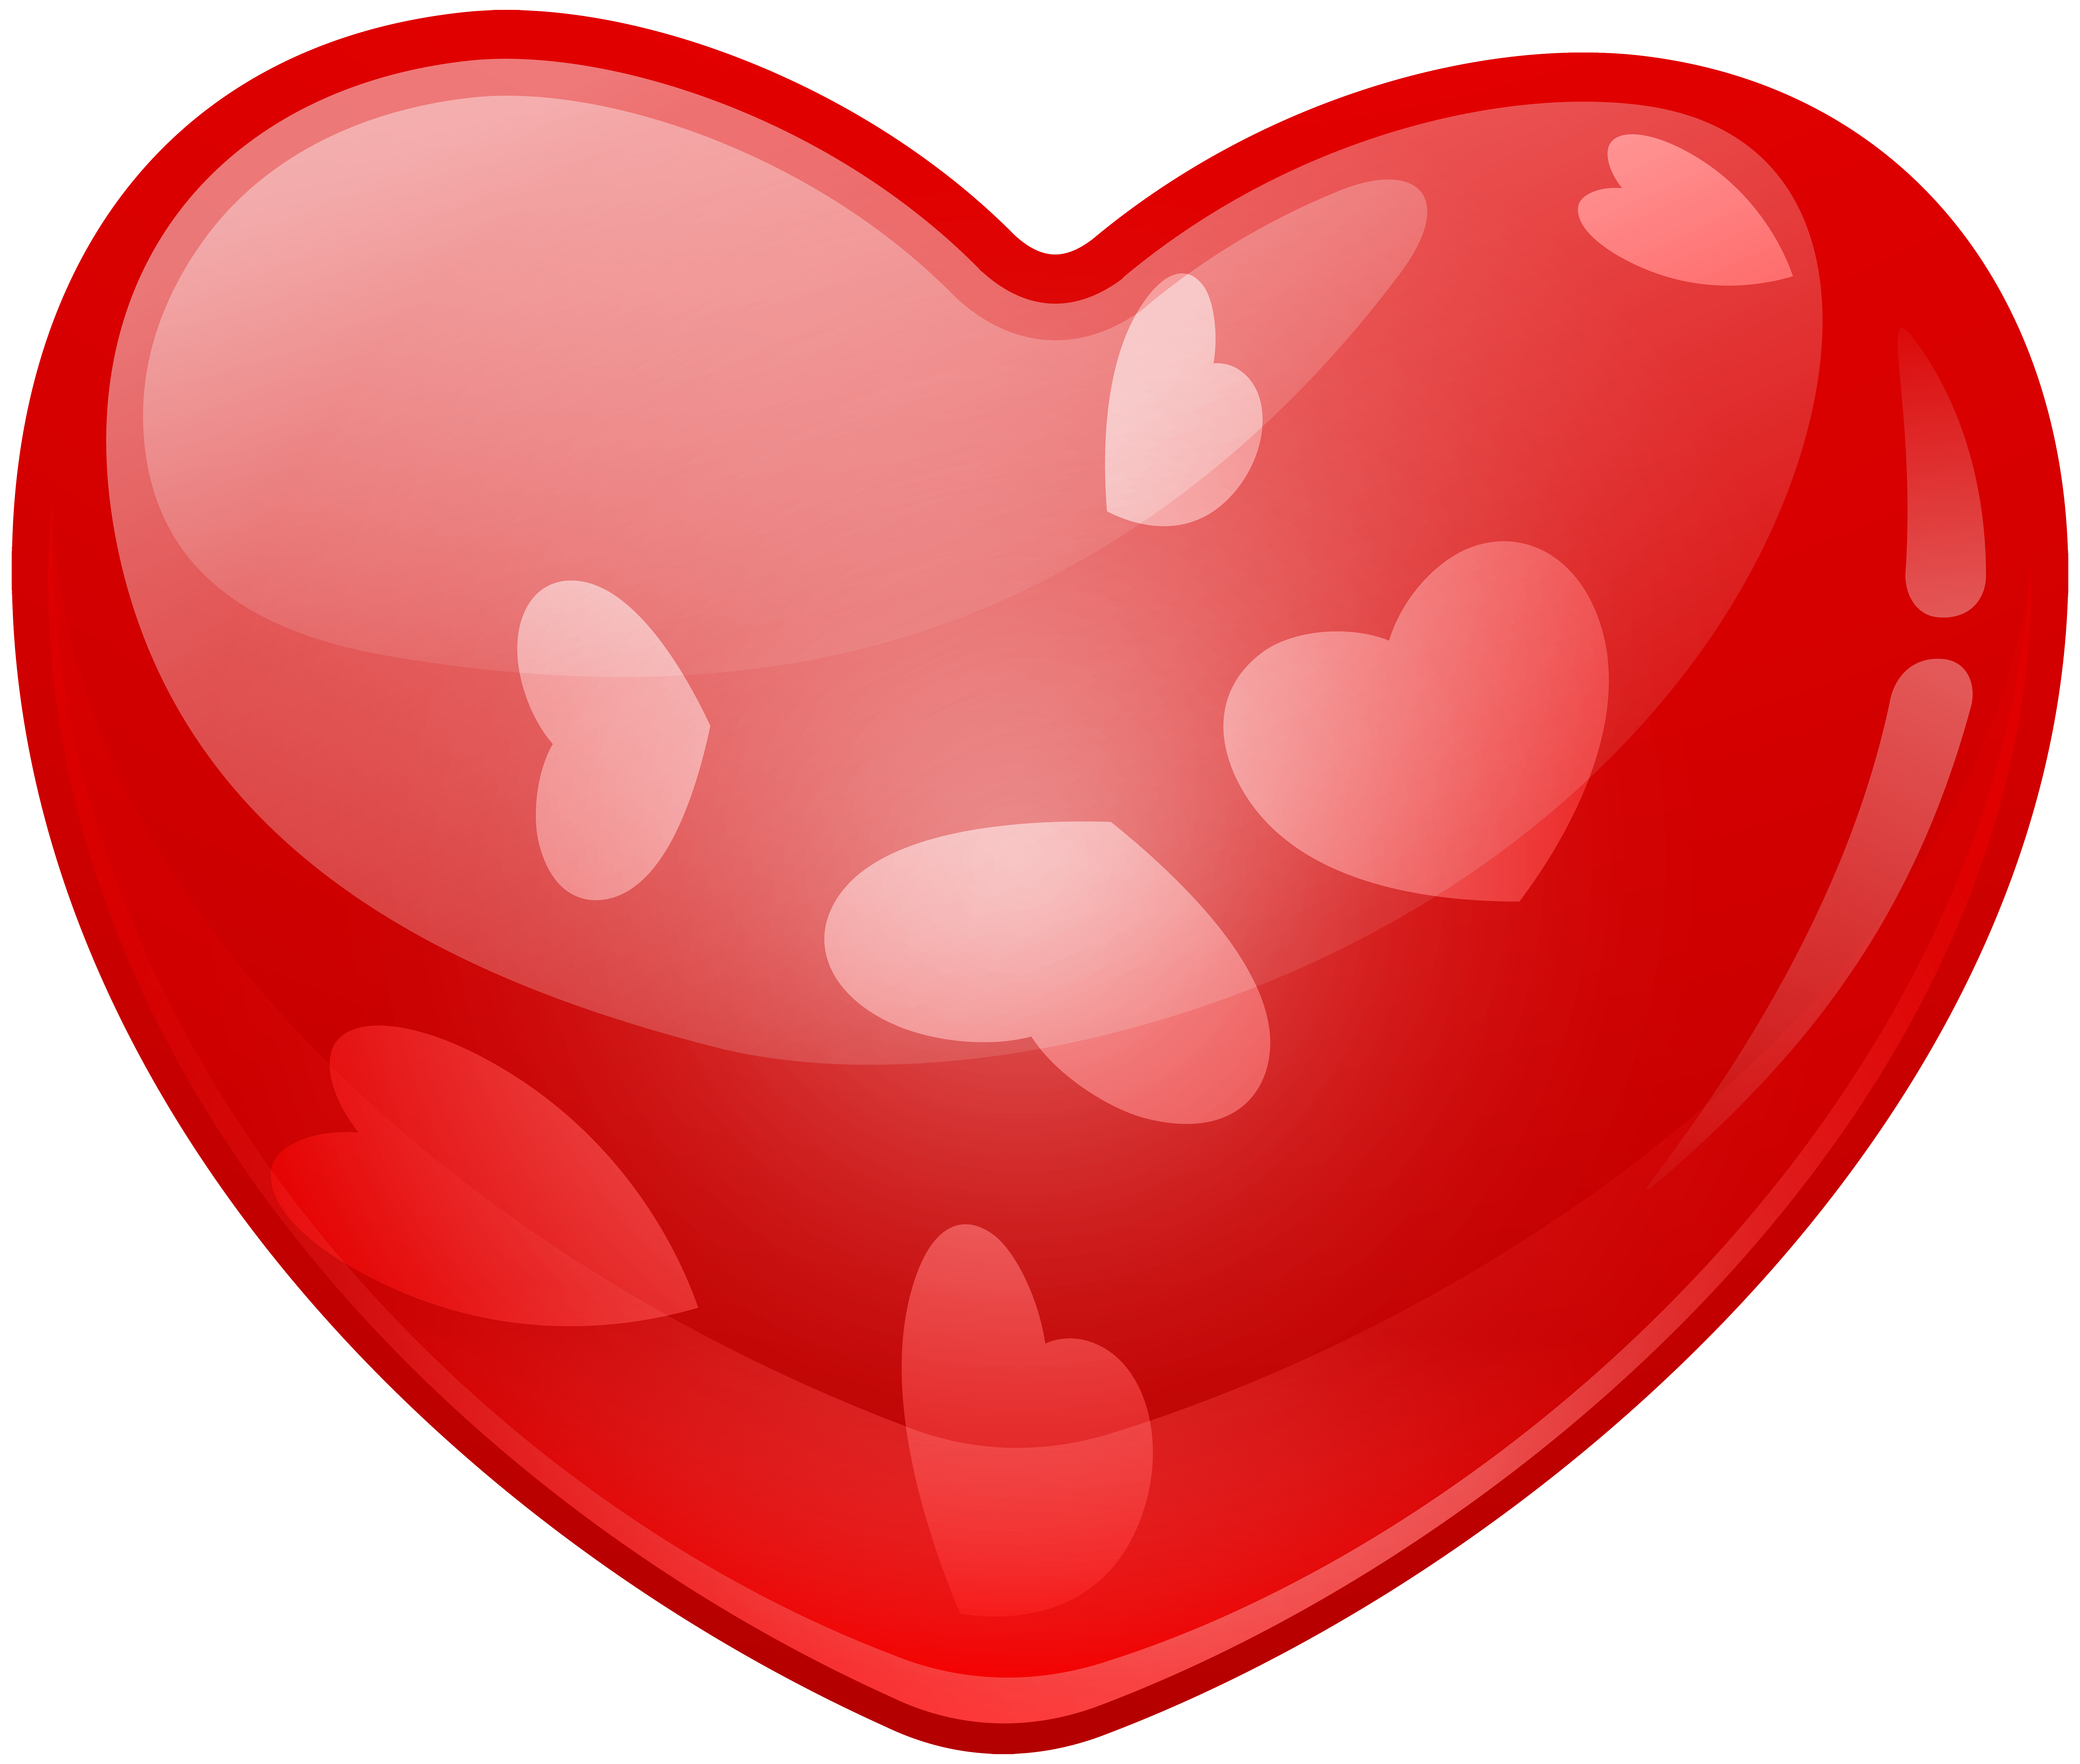 8000x6786 Heart With Hearts Png Clip Art Imageu200b Gallery Yopriceville